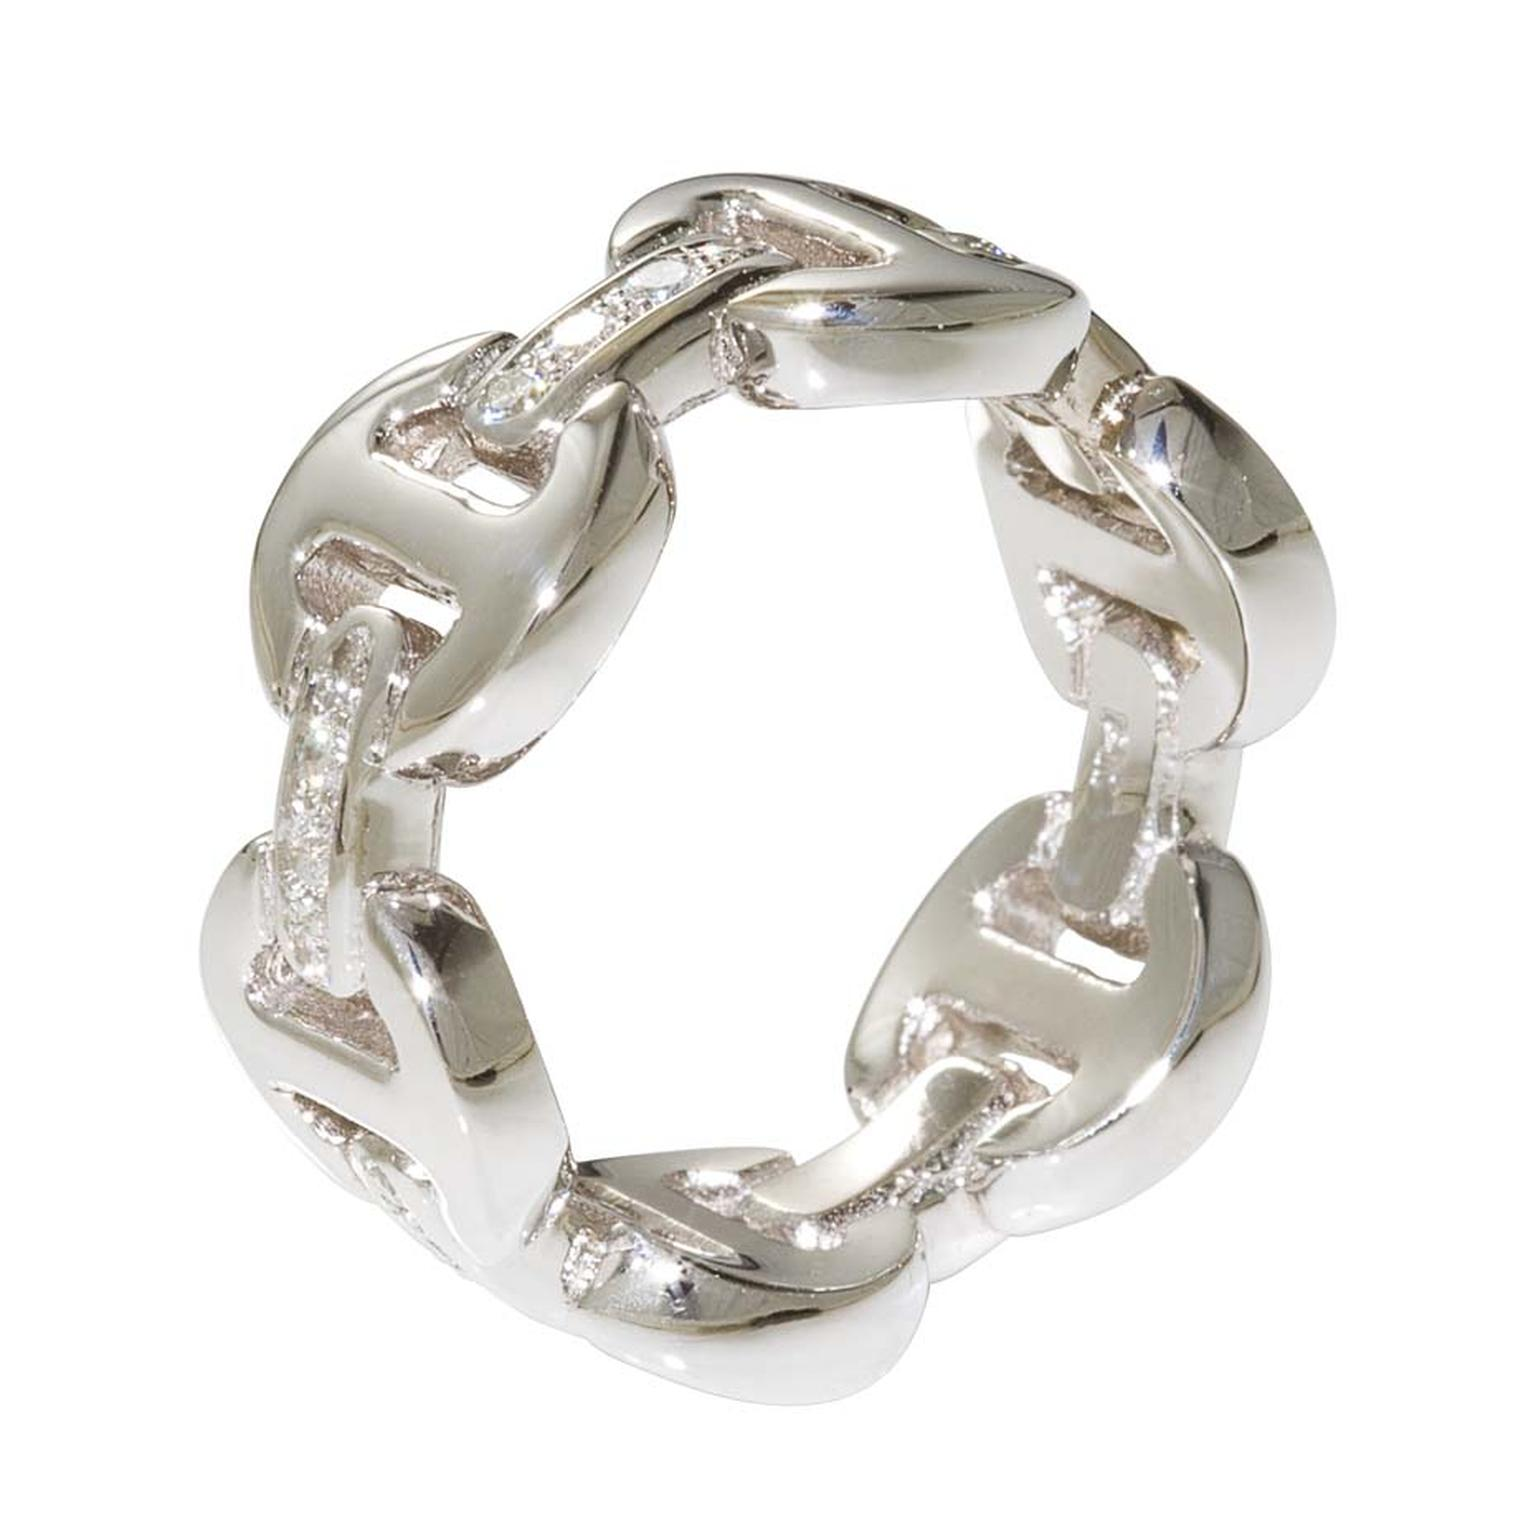 Hoorsenbuhs Tri-Link ring in silver with diamonds.